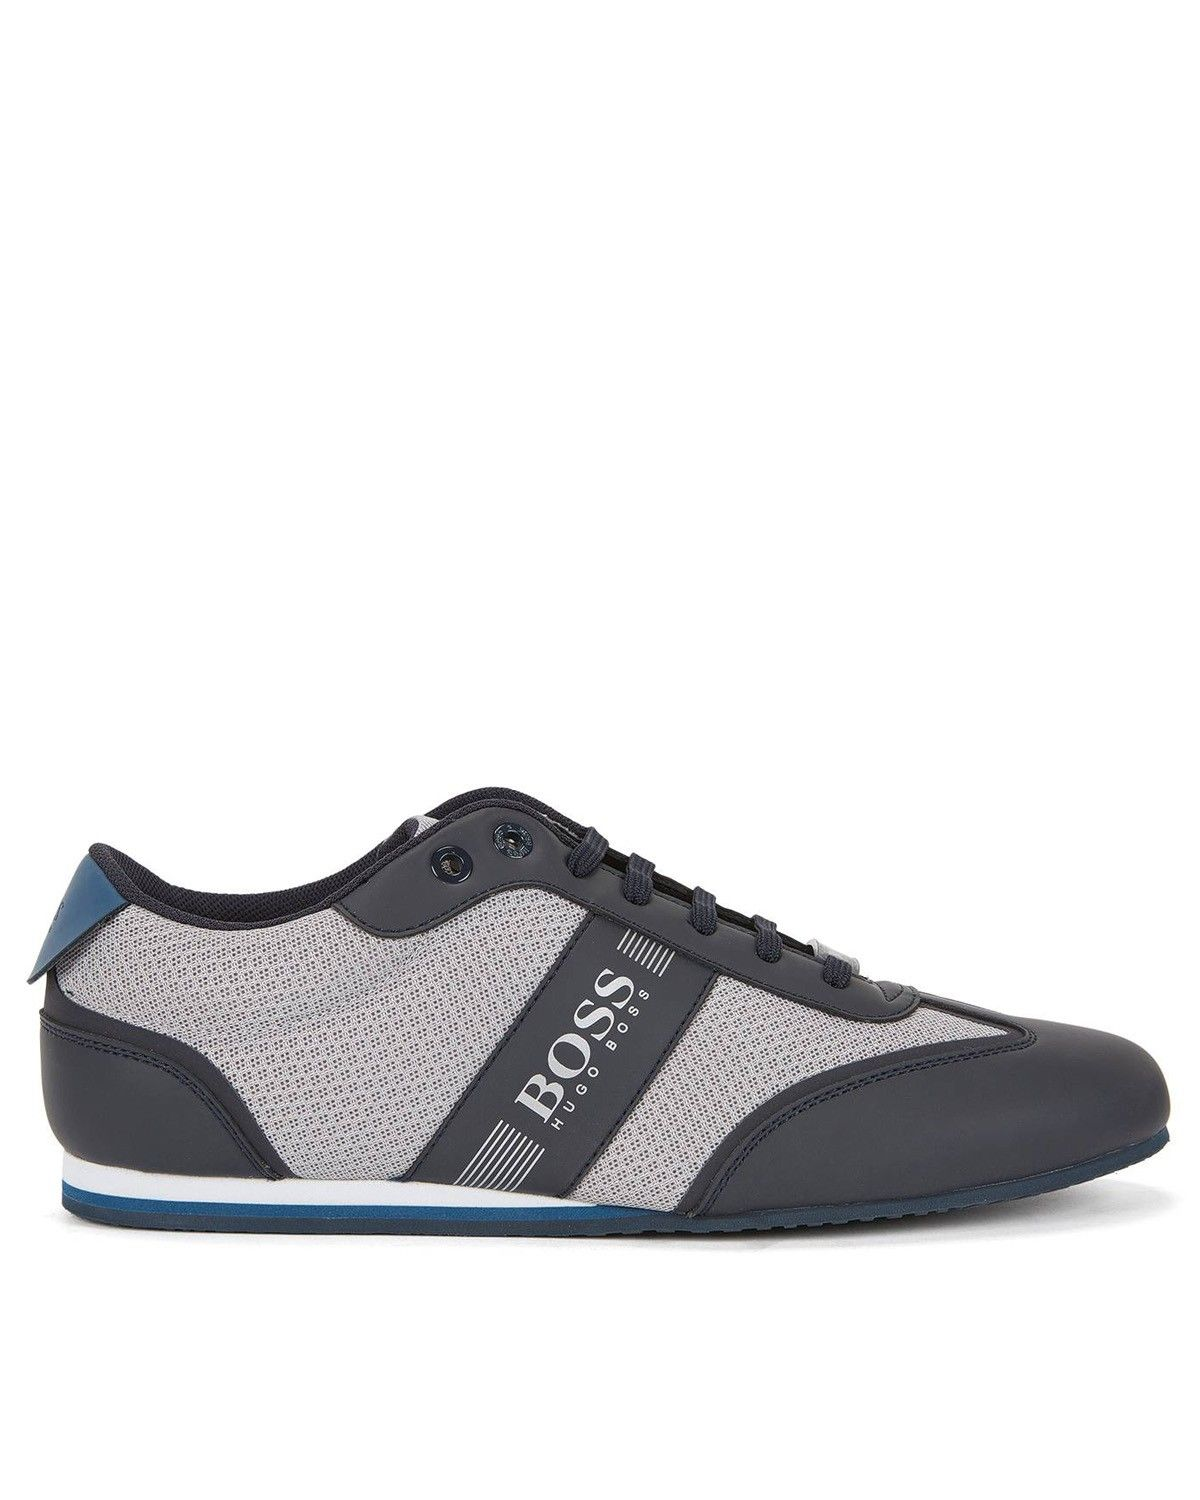 9692f4589 Zapatos Hugo Boss Azul Marino - Lighter Lowp in 2019 | Обувь ...